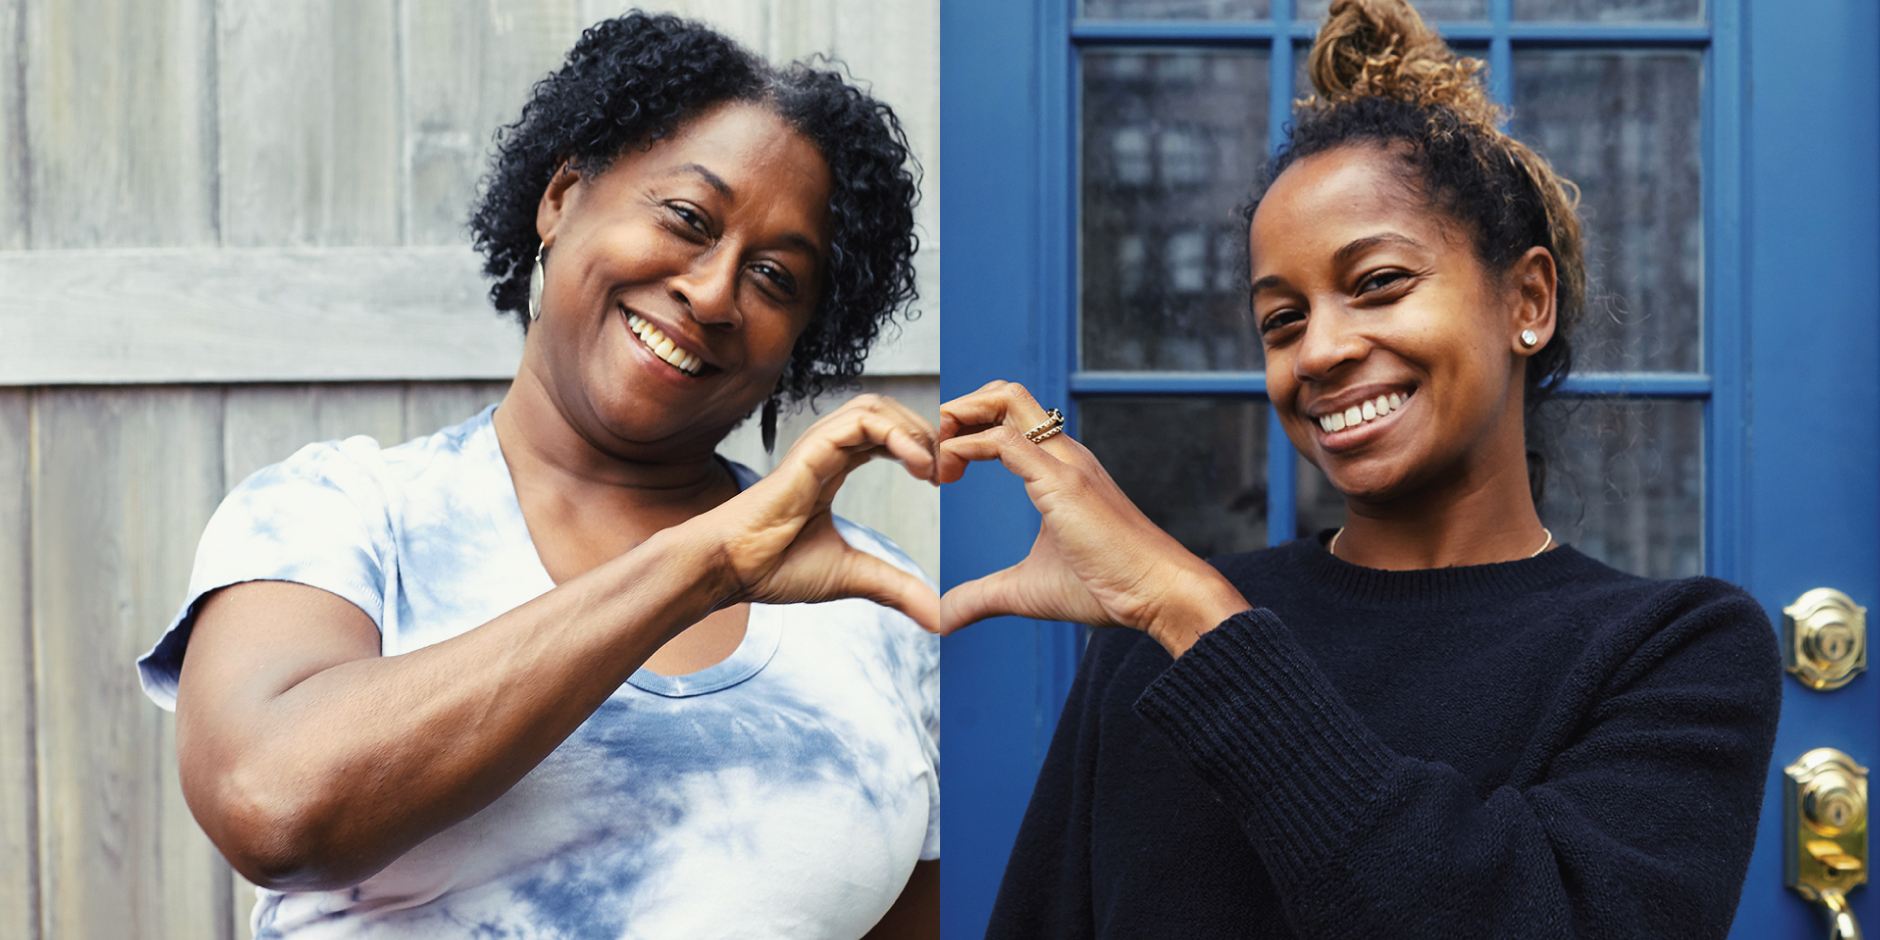 A split screen photo of a mother and daughter, each holding up one hand to form half of a heart